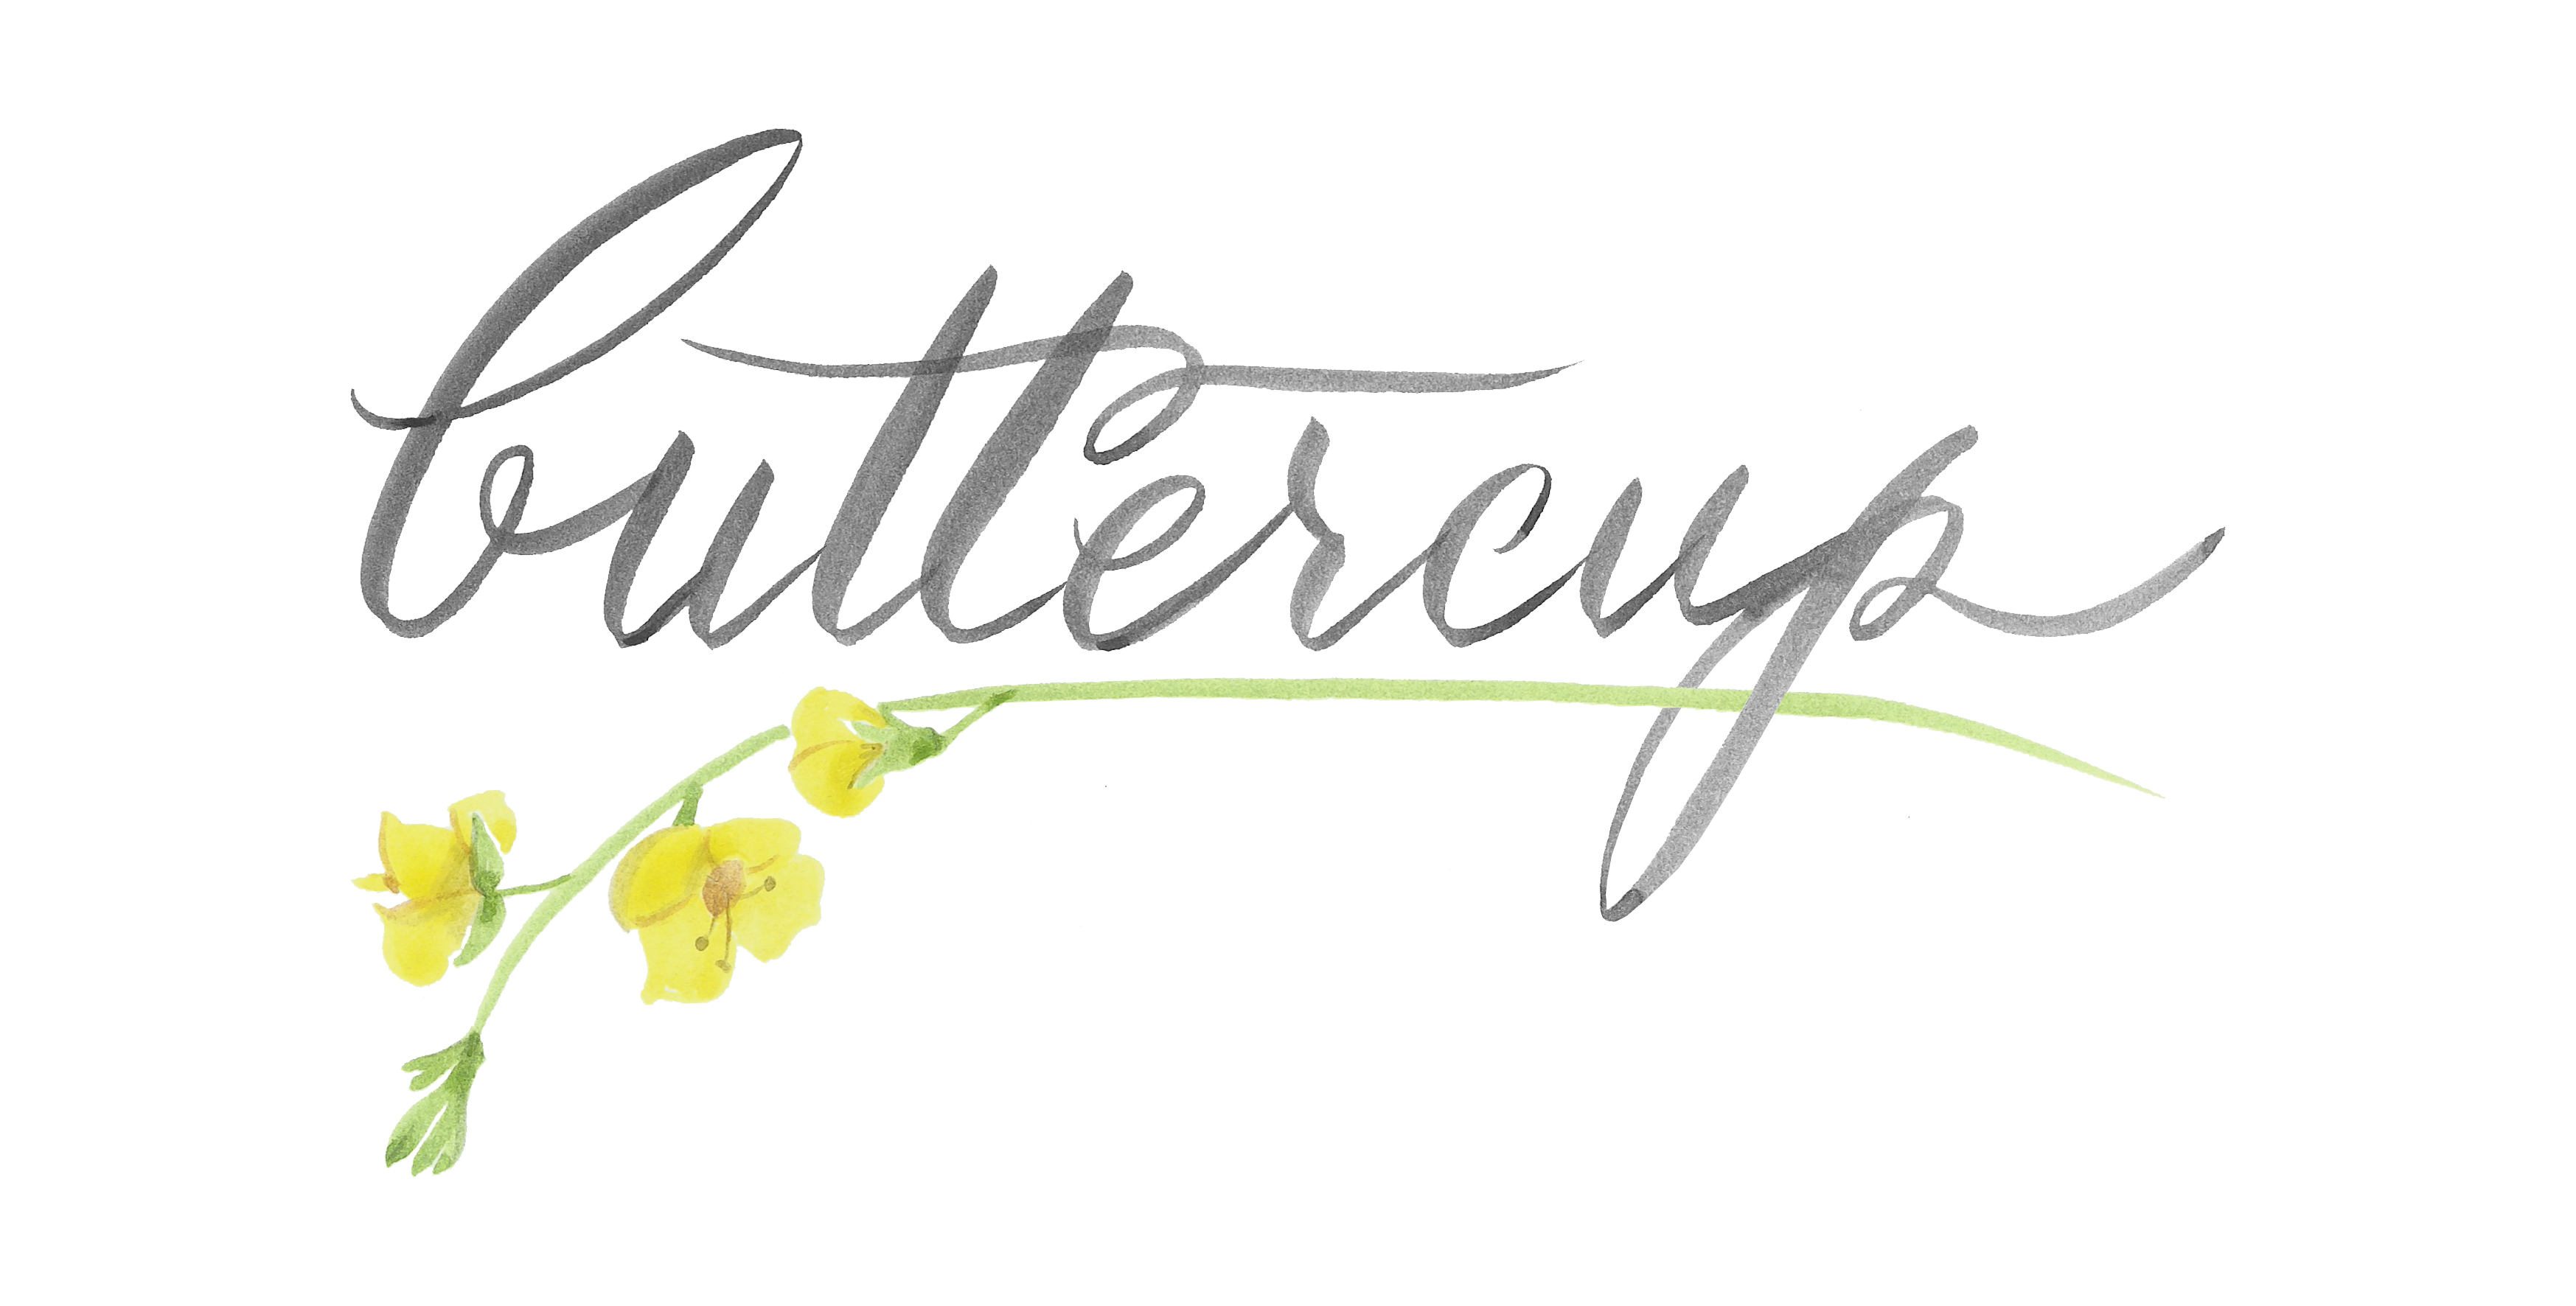 HQ Buttercup Wallpapers | File 1150.39Kb